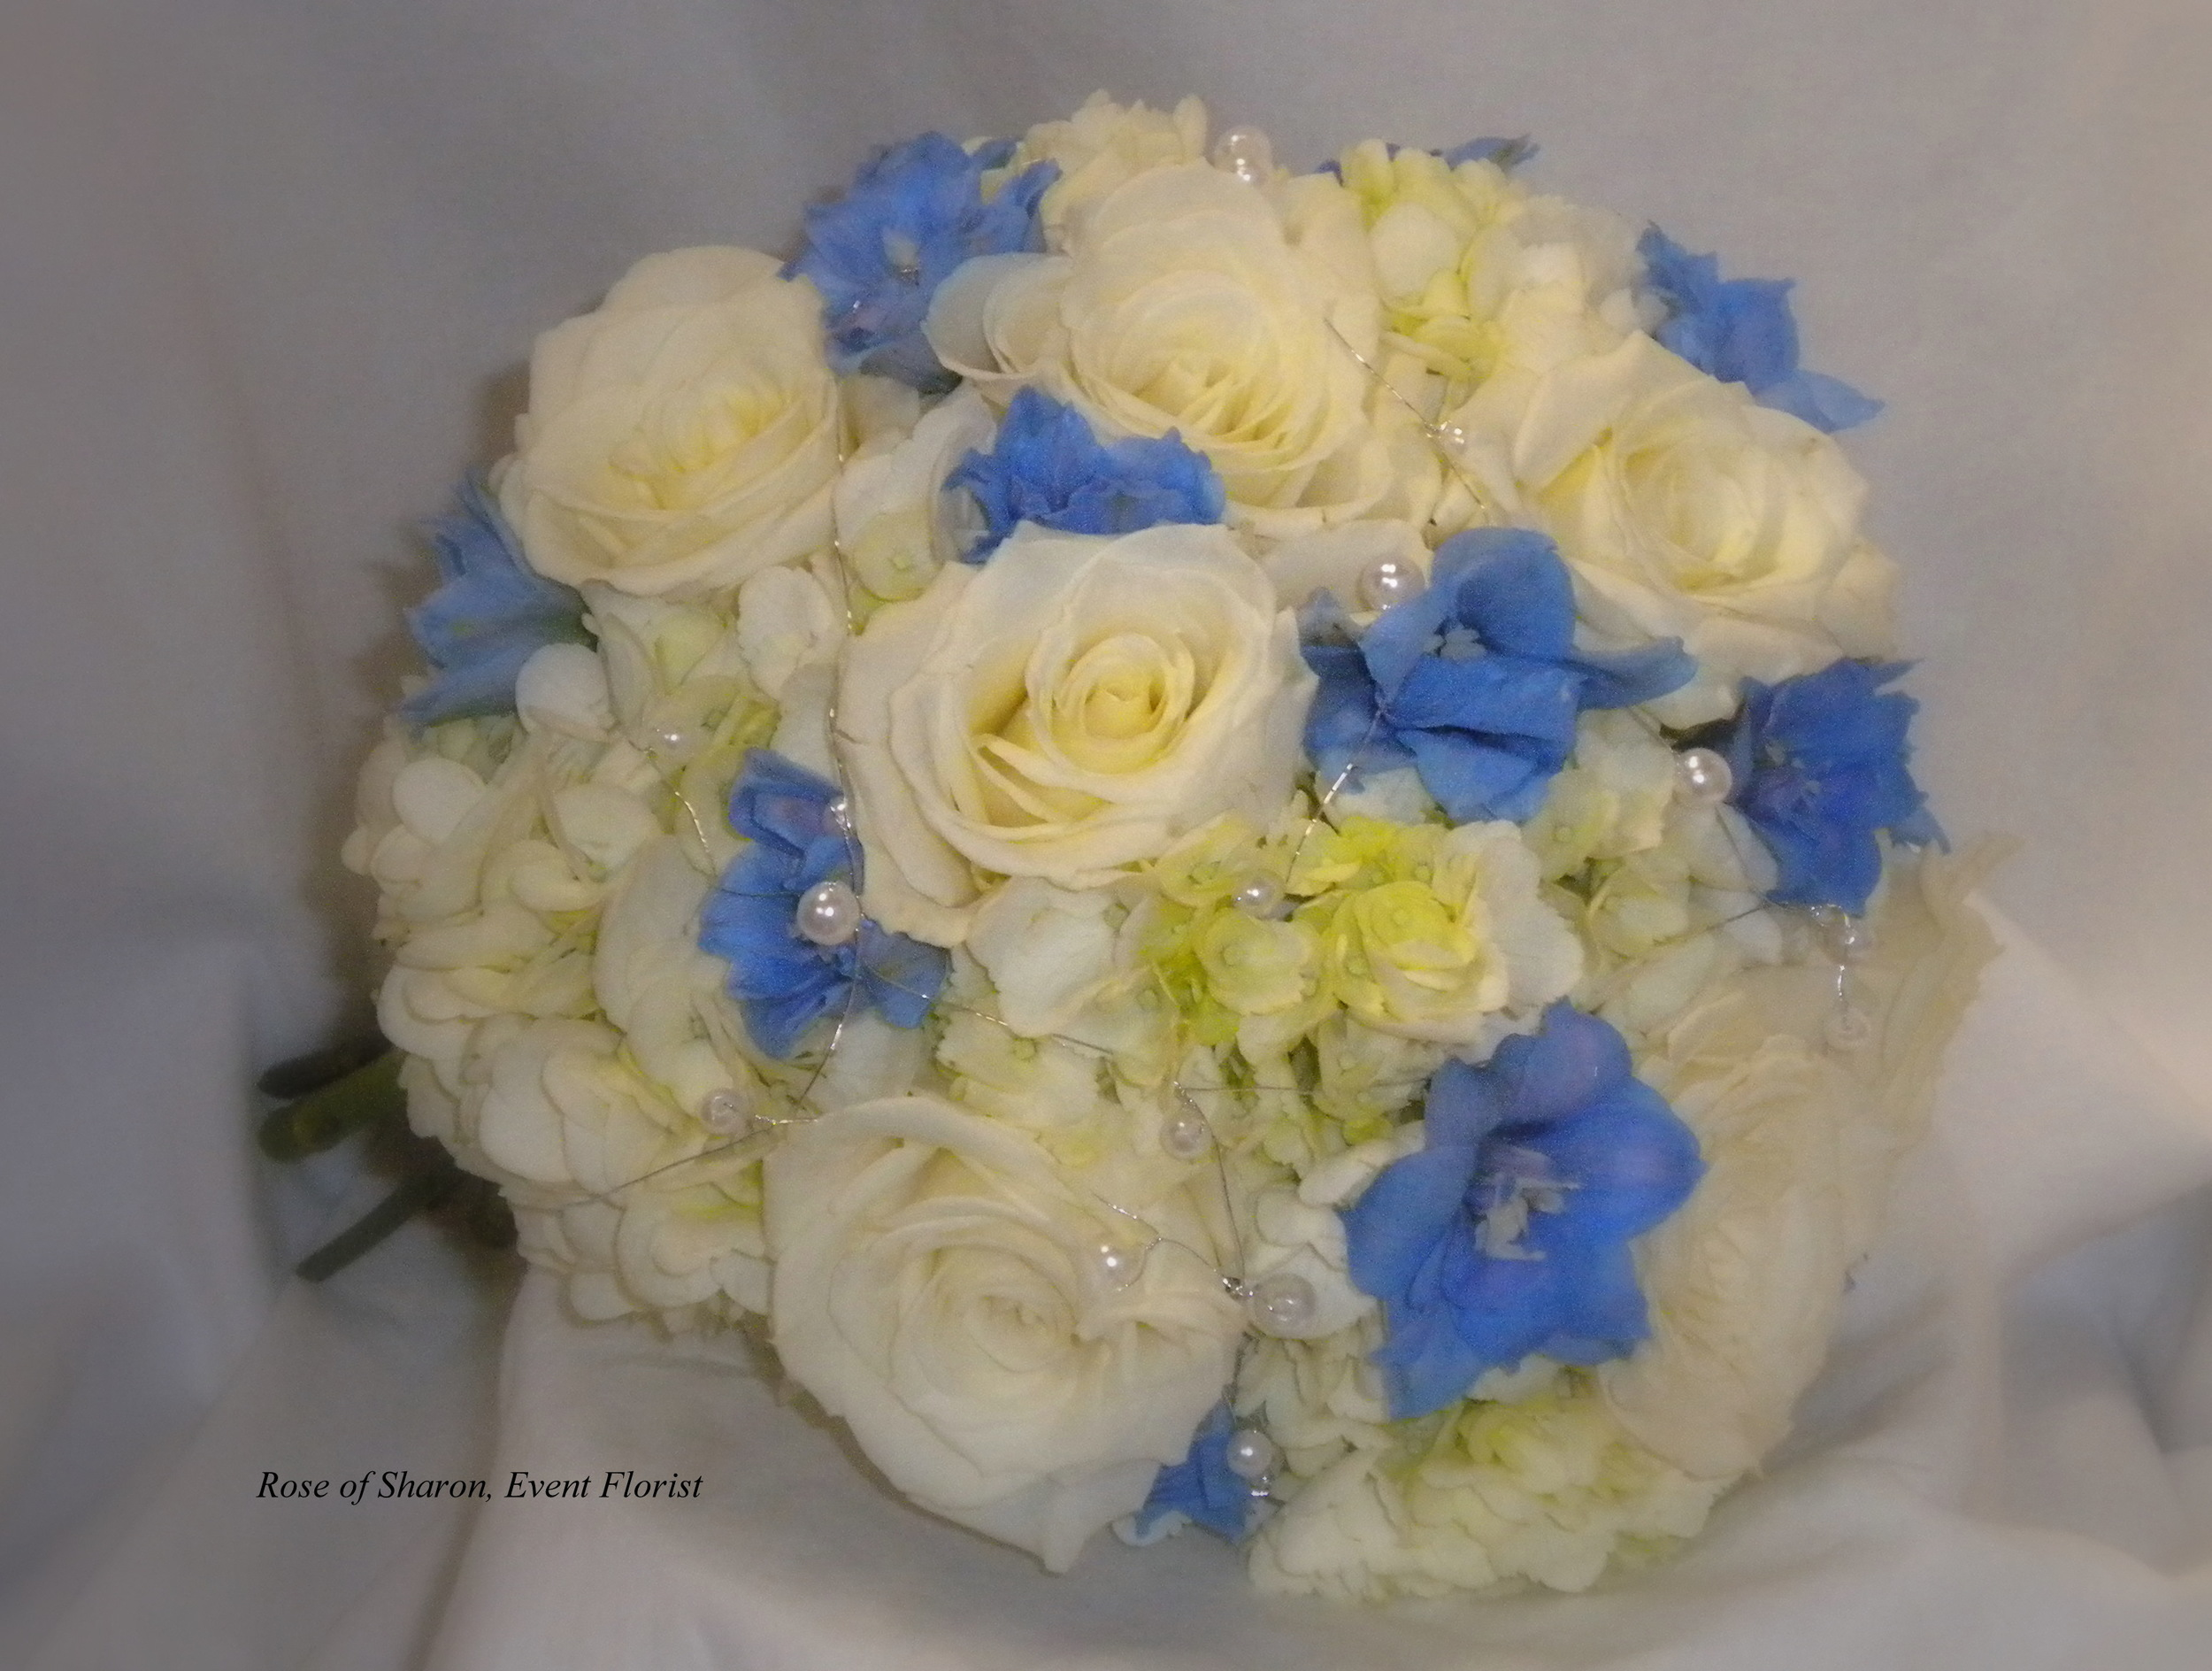 Blue and Ivory Hand-Tied Bouquet with Hydrangeas, Roses, Delphinium and Pearl Accents. Rose of Sharon Floral Designs